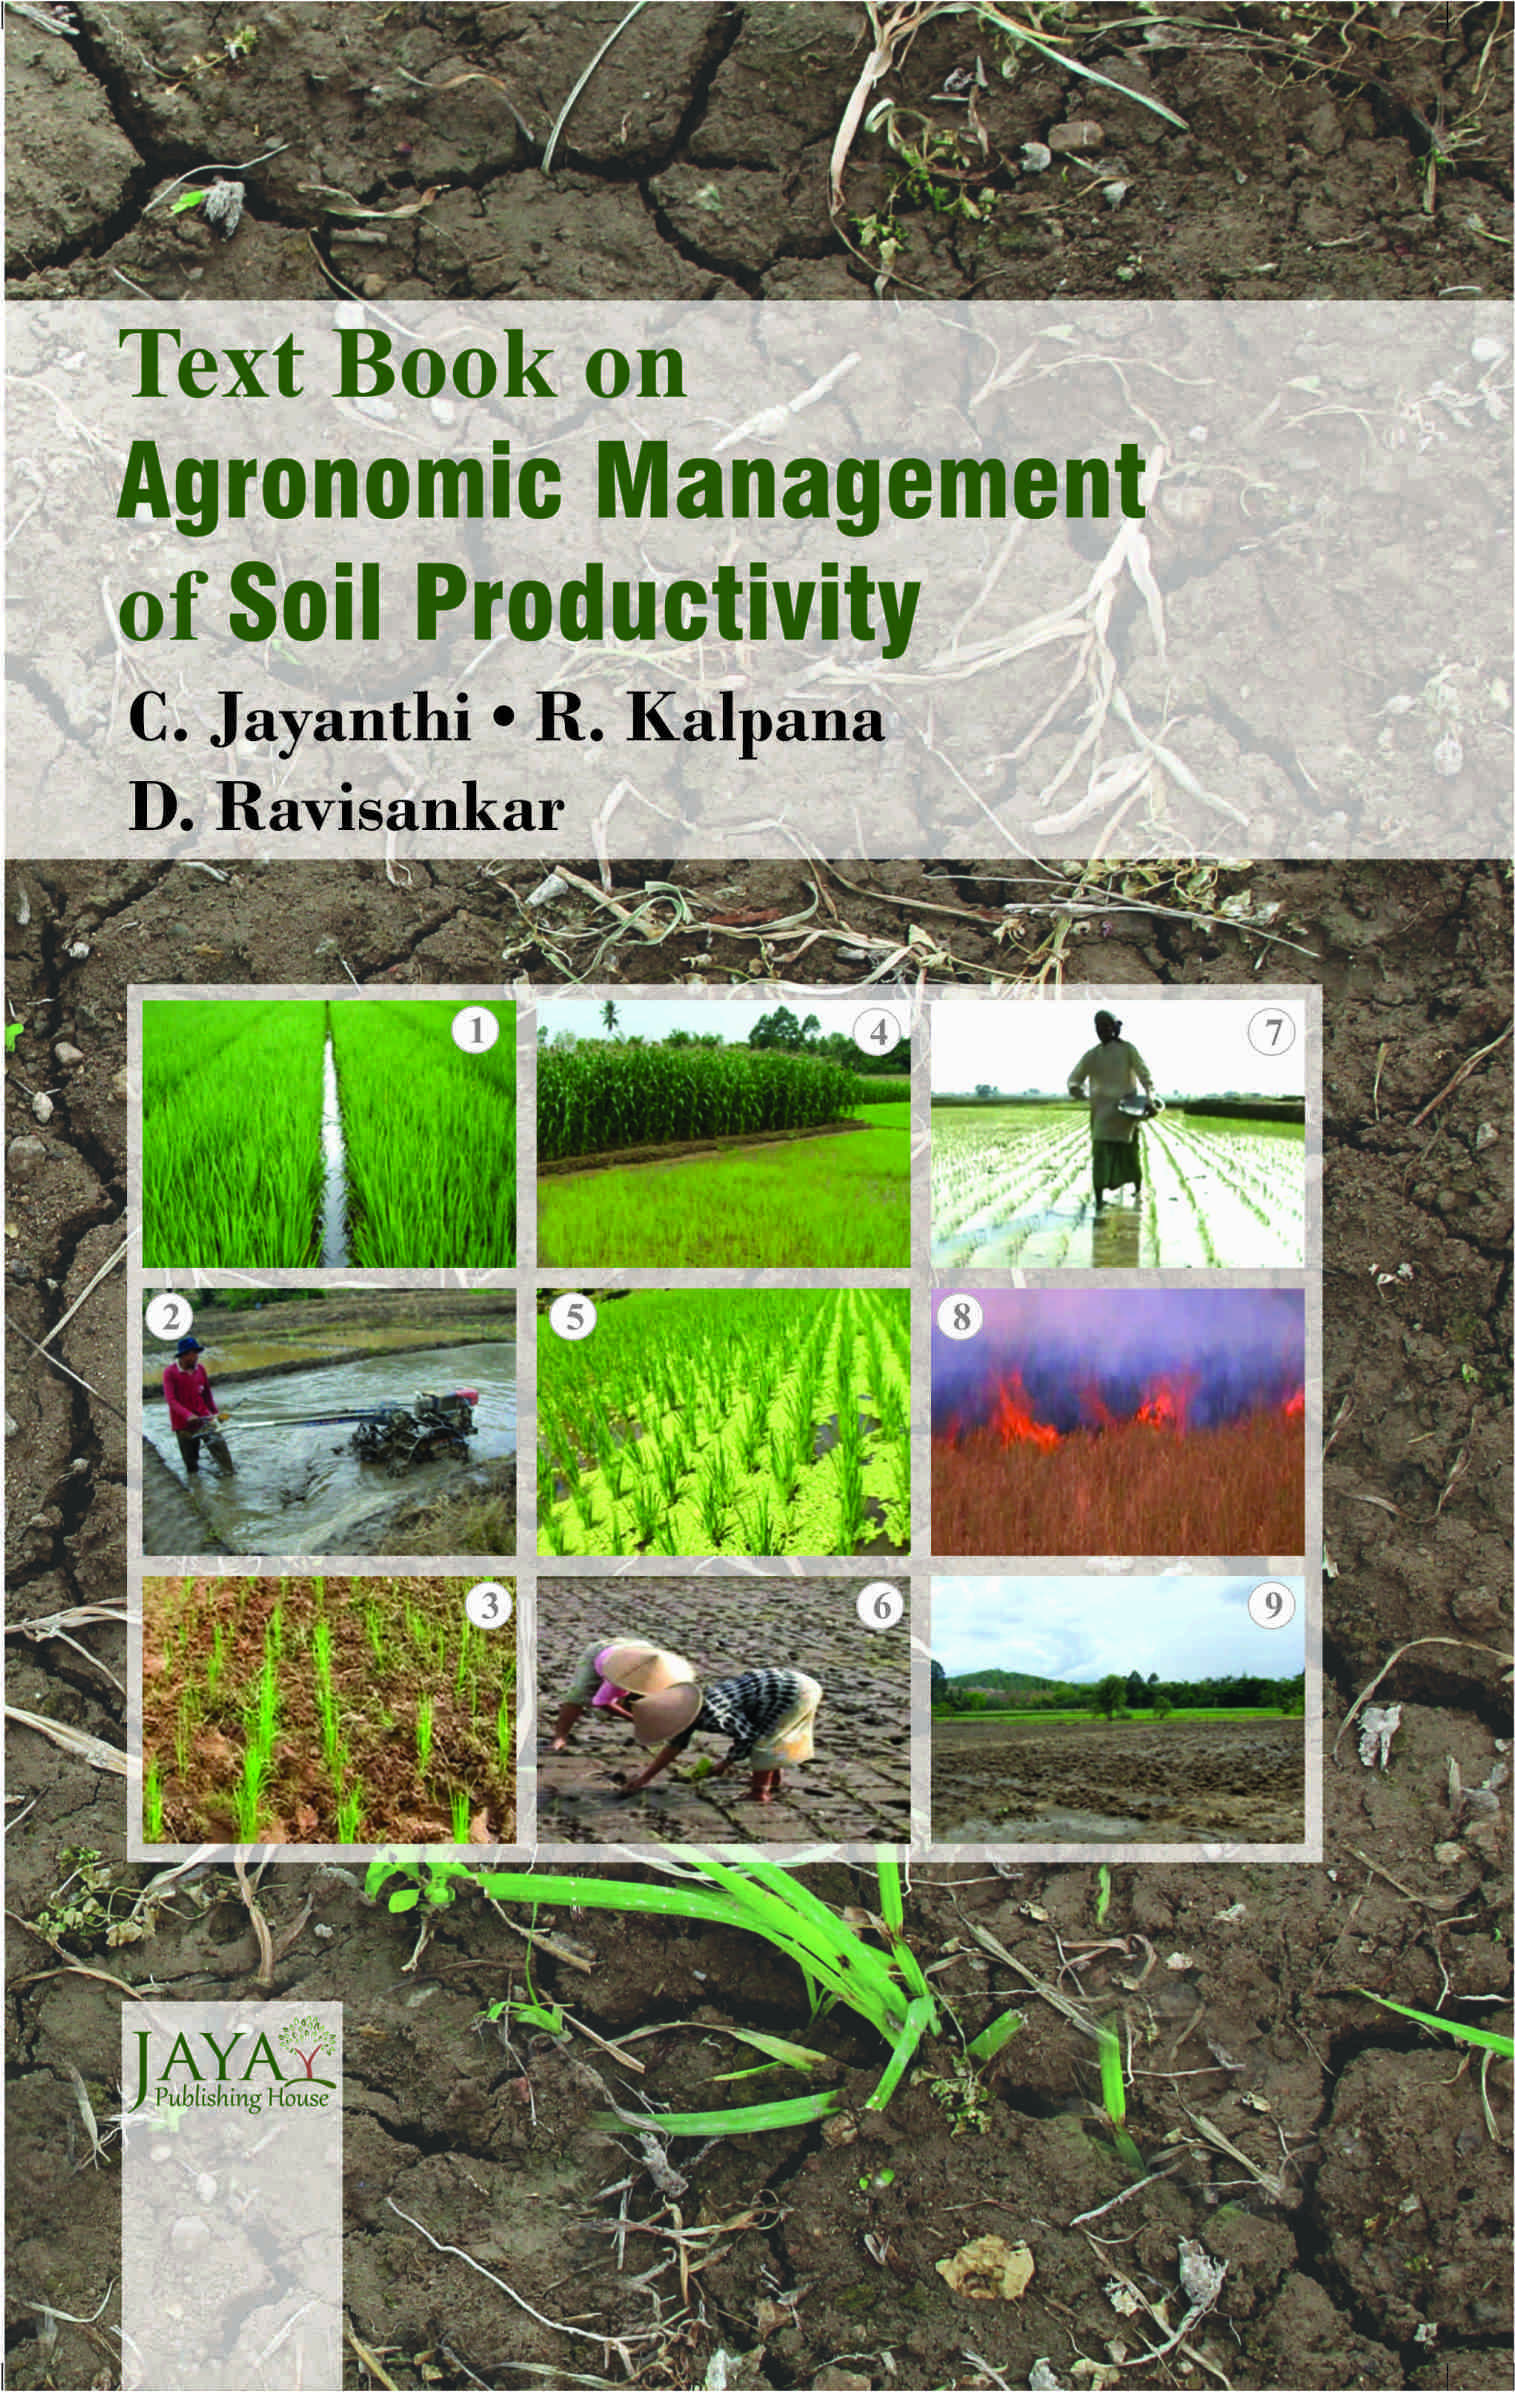 Text Book on Agronomic Management of Soil Productivity